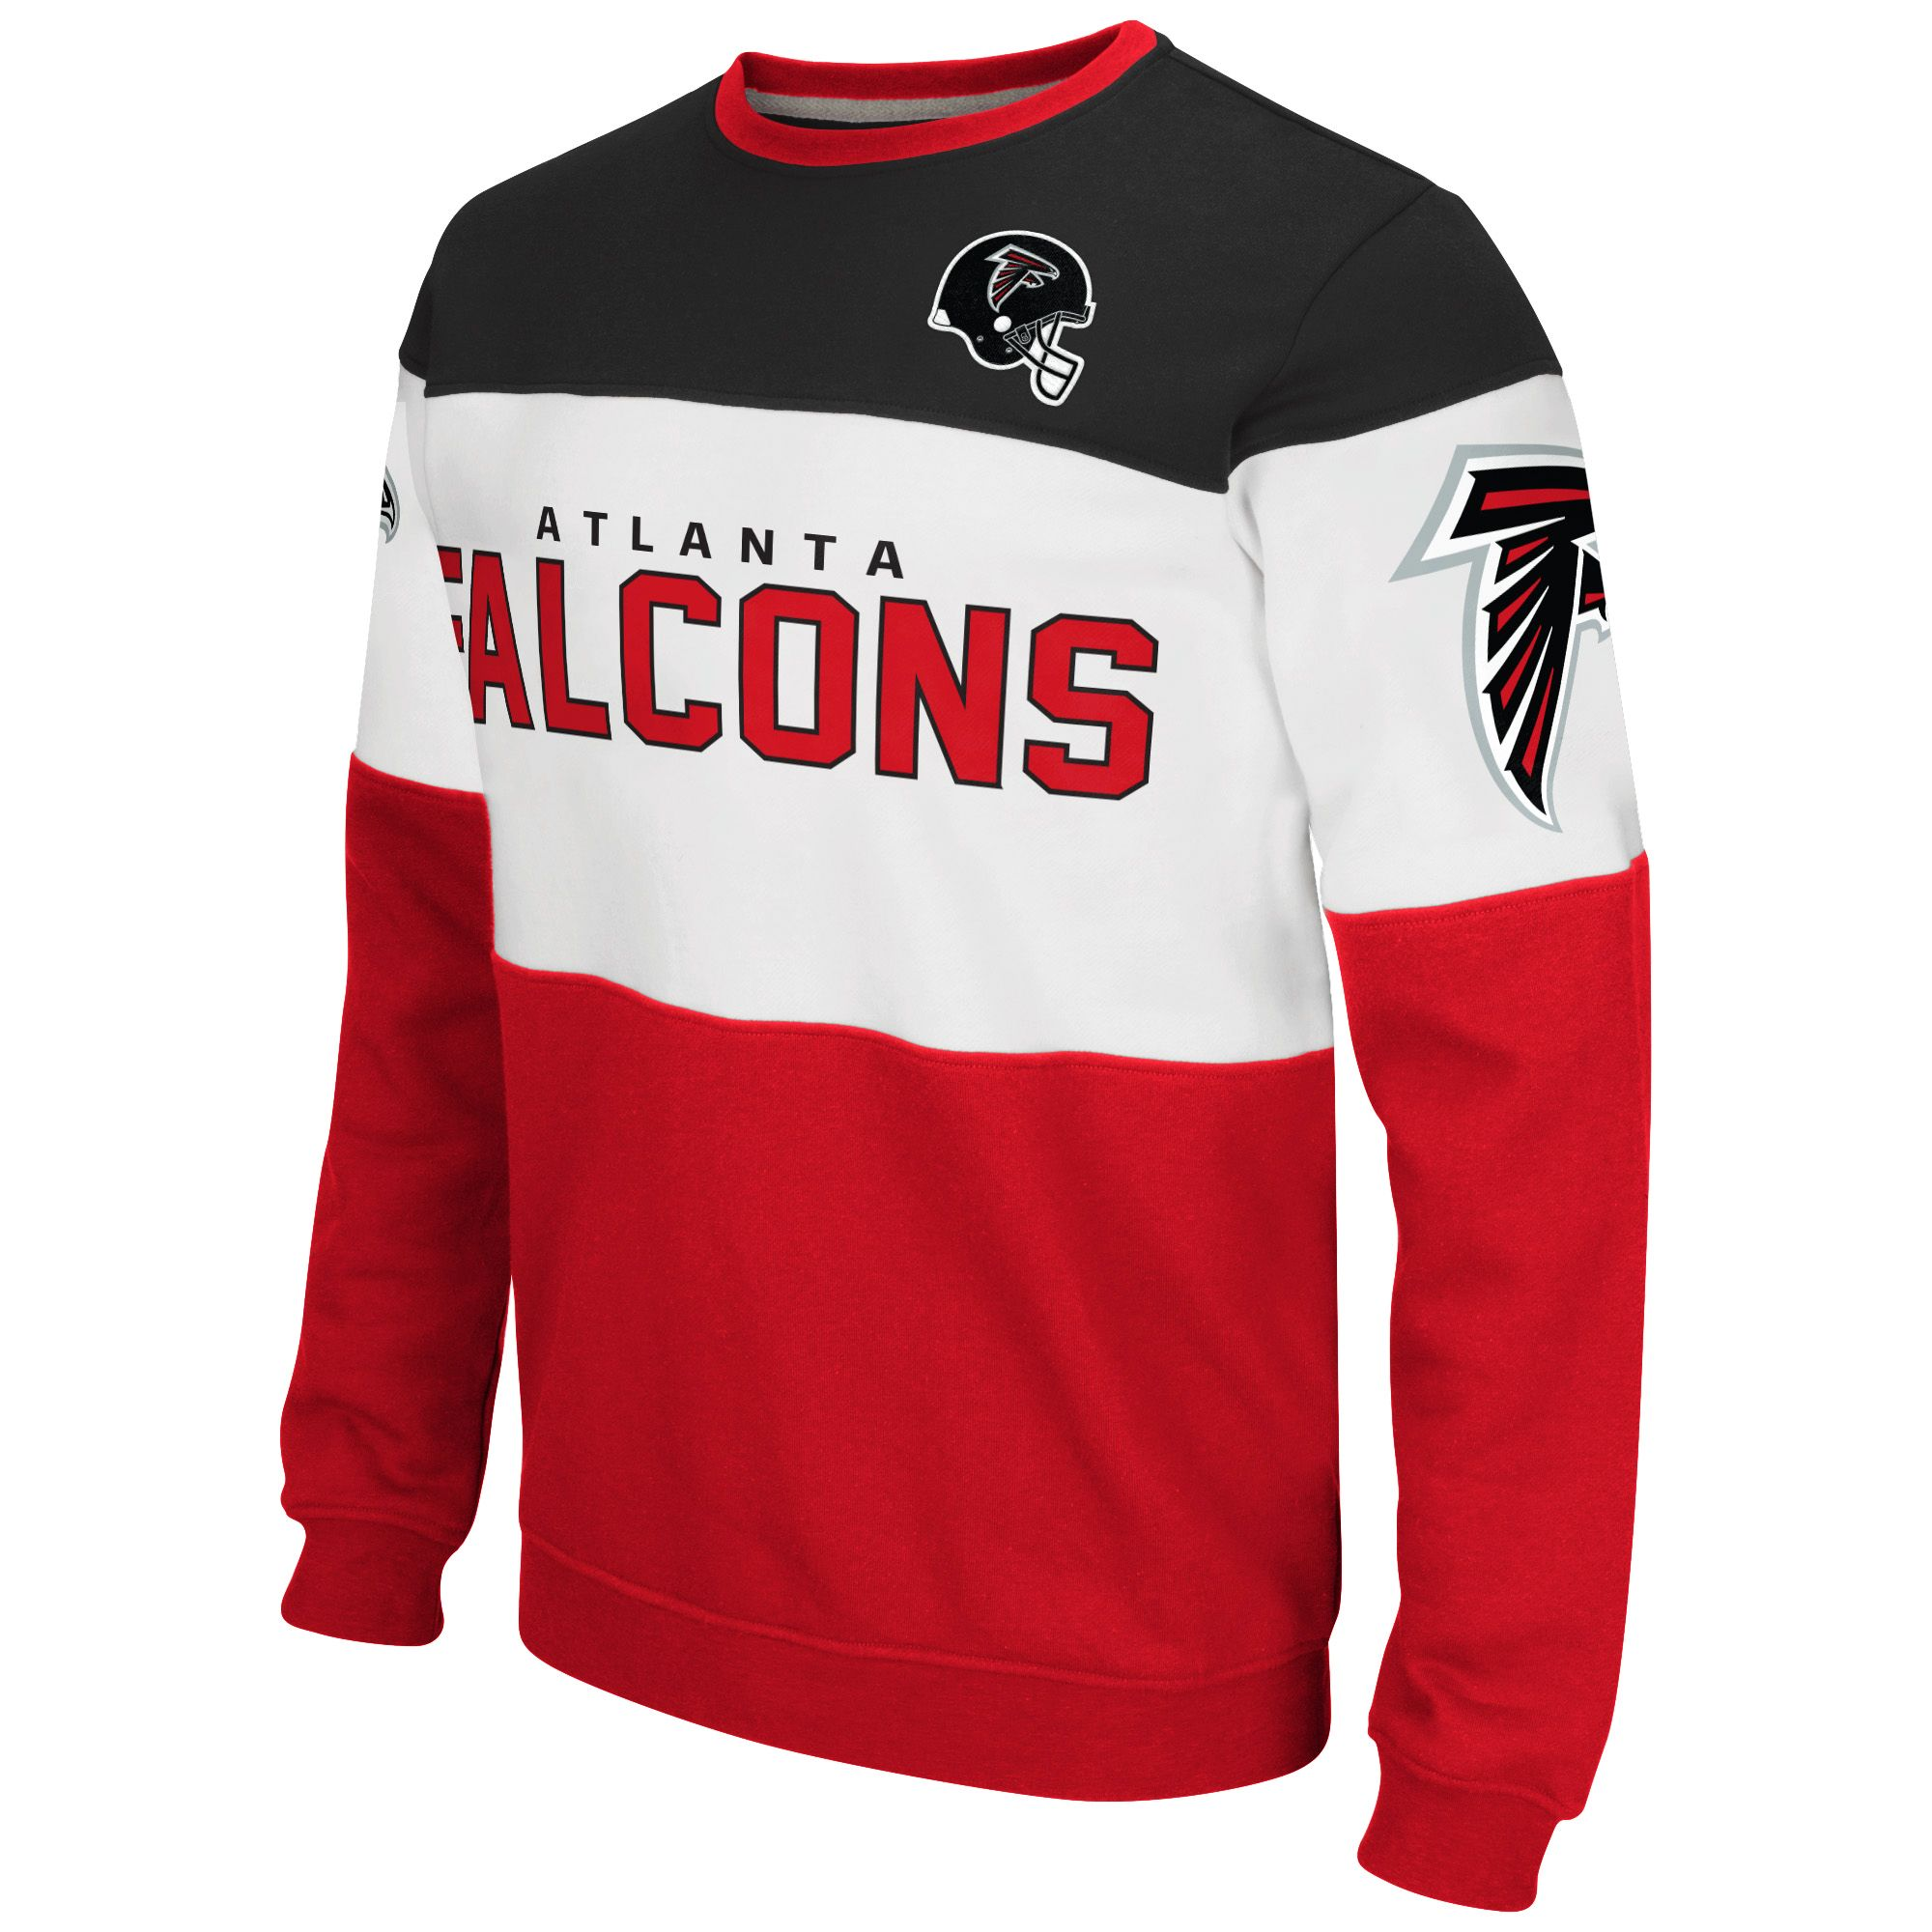 Nfl Atlanta Falcons G Iii Extreme Supreme Fleece Sweatshirt Black Sweatshirts Chicago Bulls Sweatshirt Mens Sweatshirts